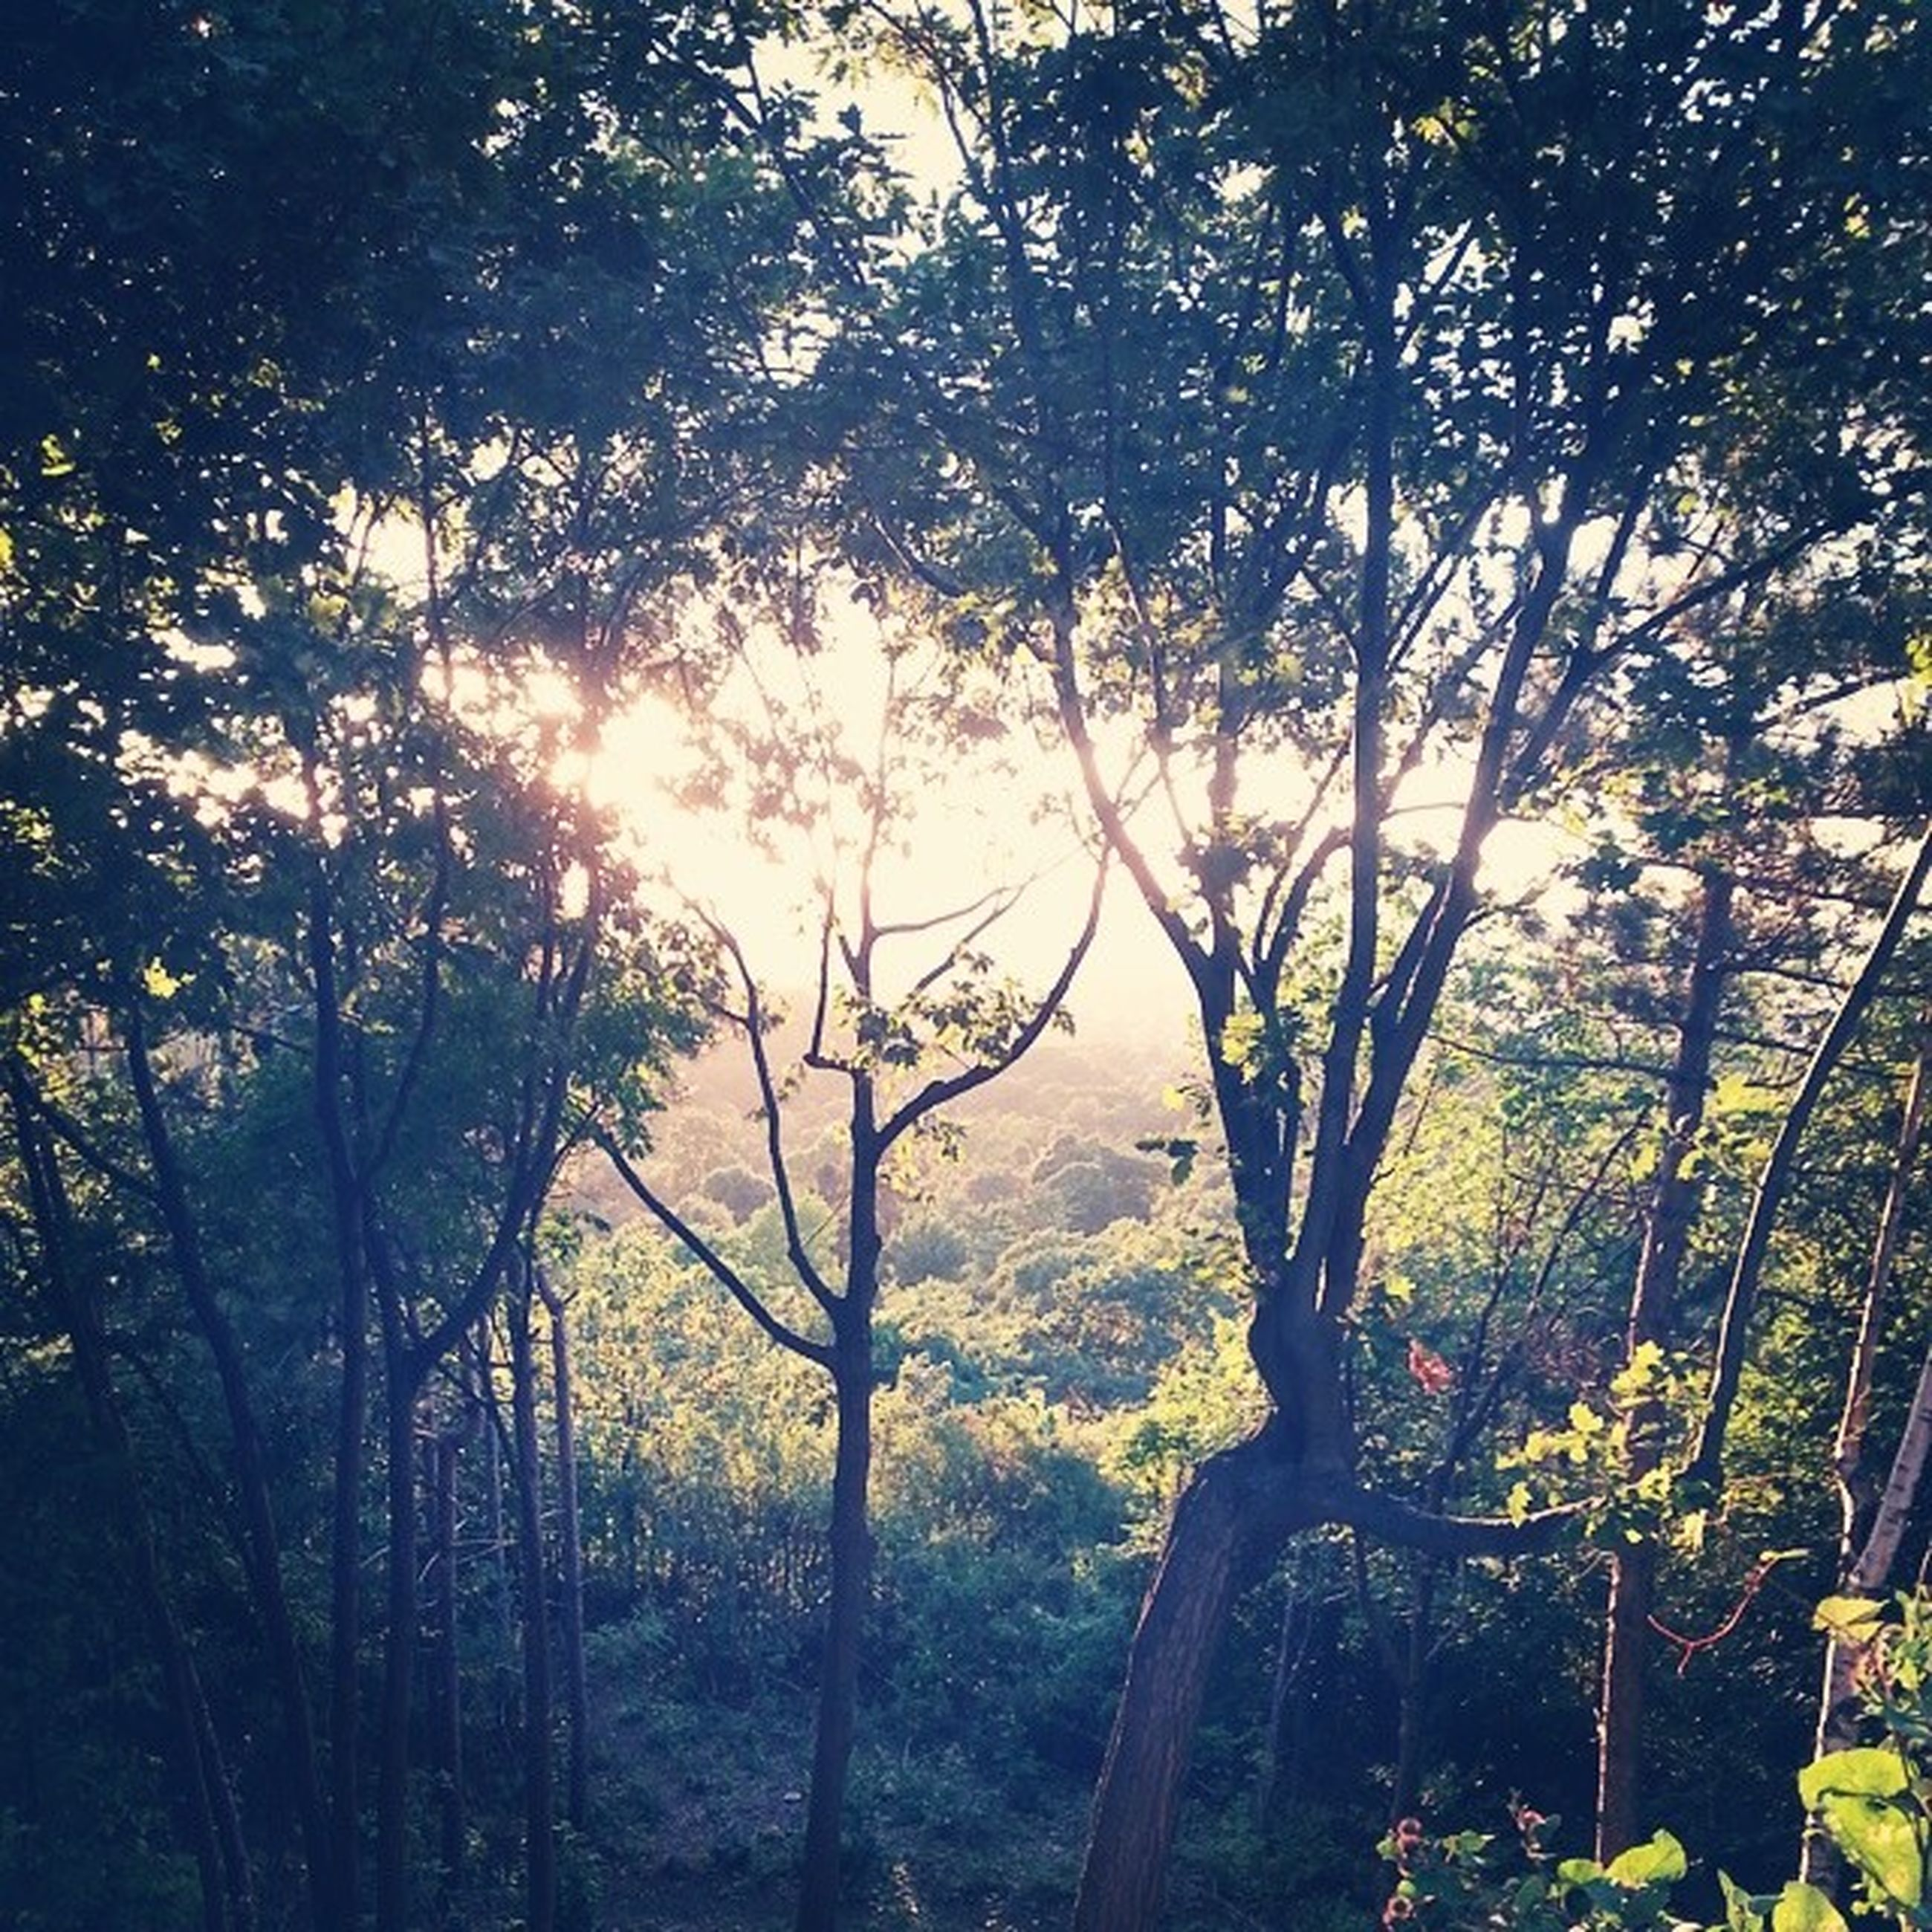 tree, tranquility, growth, forest, tranquil scene, beauty in nature, nature, scenics, branch, sunlight, non-urban scene, woodland, plant, tree trunk, idyllic, landscape, no people, sunbeam, outdoors, sunset